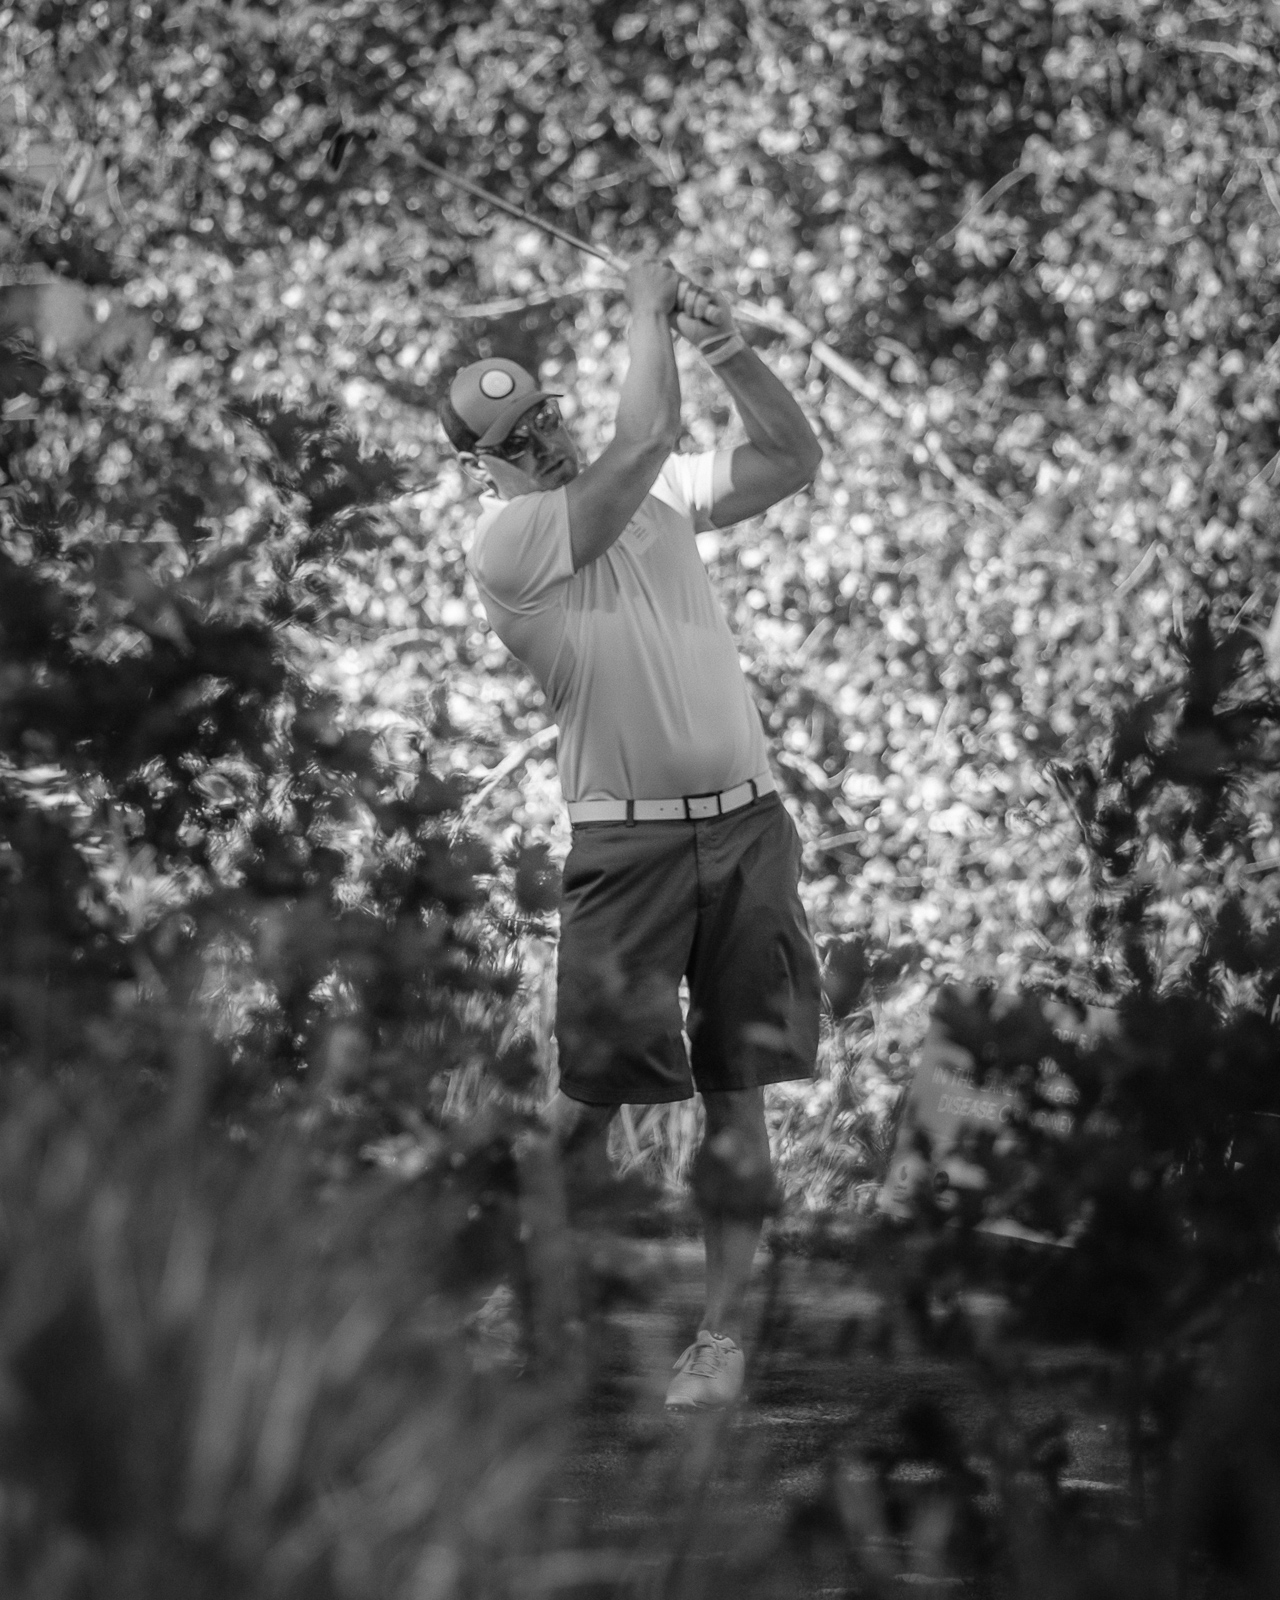 Day 177 - 365 Day B&W Photo Challenge - I was doing a little charity work for the National Kidney Foundation yesterday capturing images for the NKF Golf Classic and captured this golfer's tee shot through the bushes. -  Fujifilm X-T3, XF 50-140mm f/2.8, Acros R Film Simulation